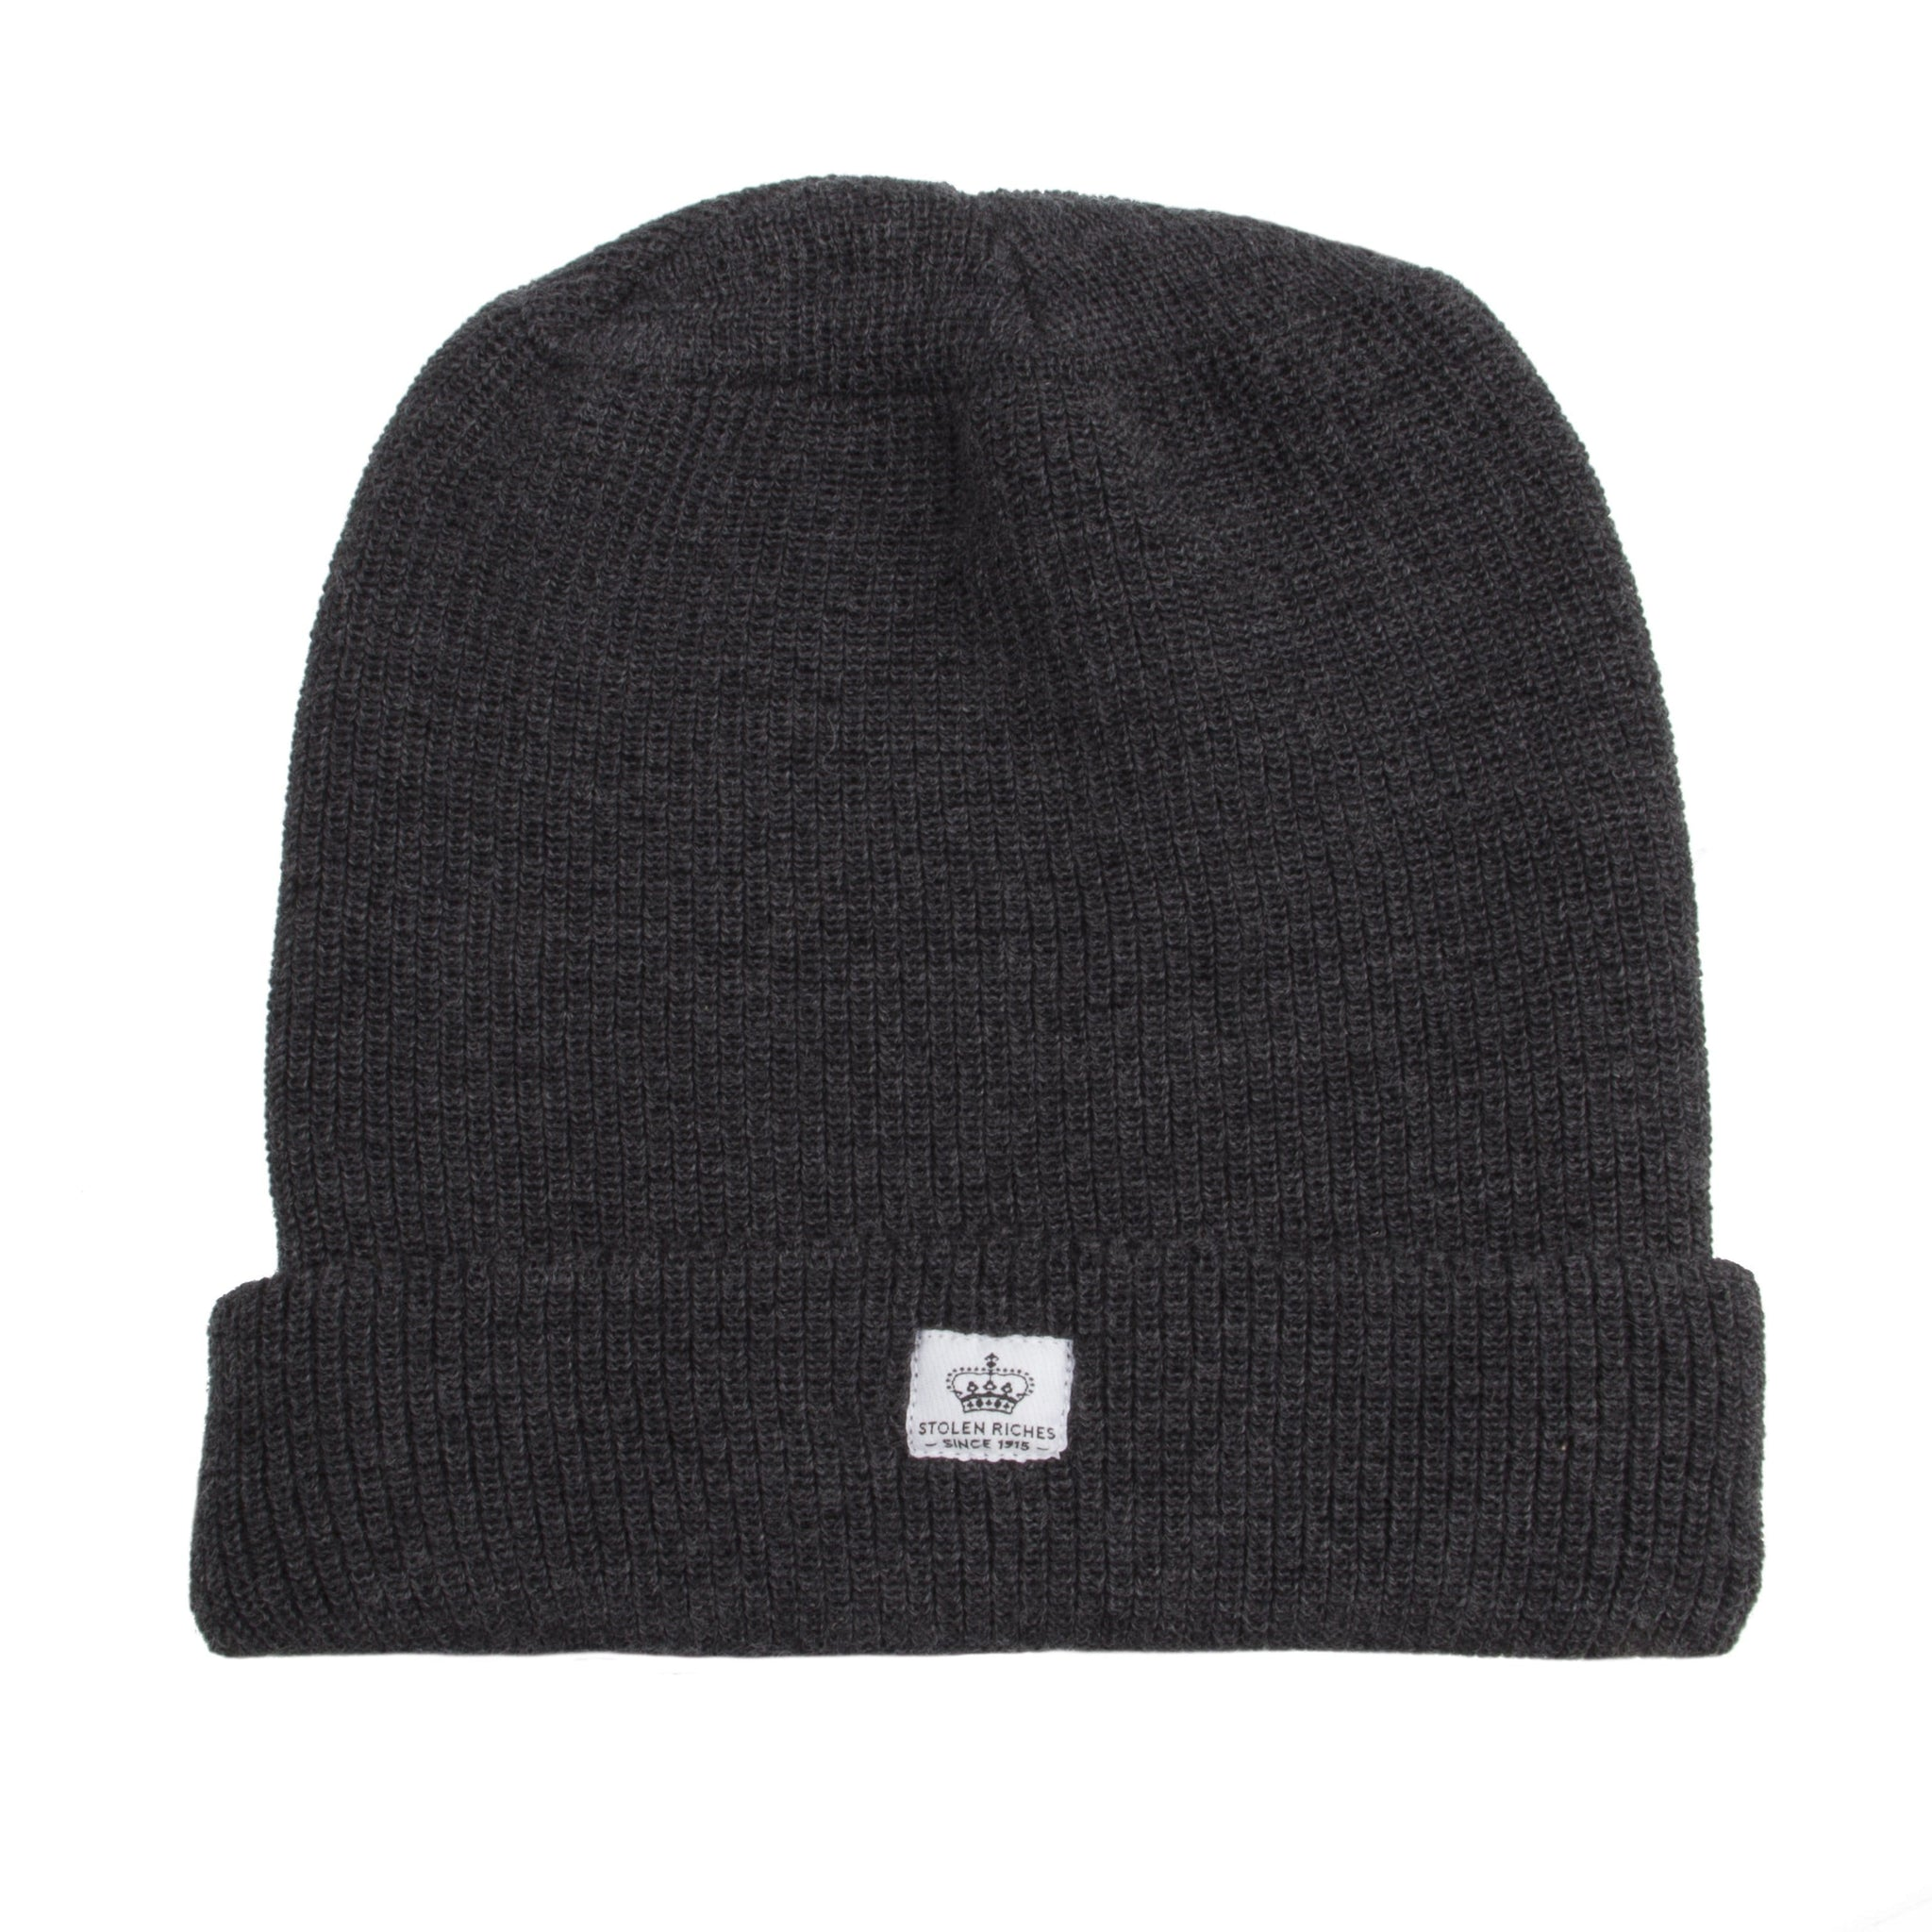 Charcoal Charlie Wool Toque - Stolen Riches